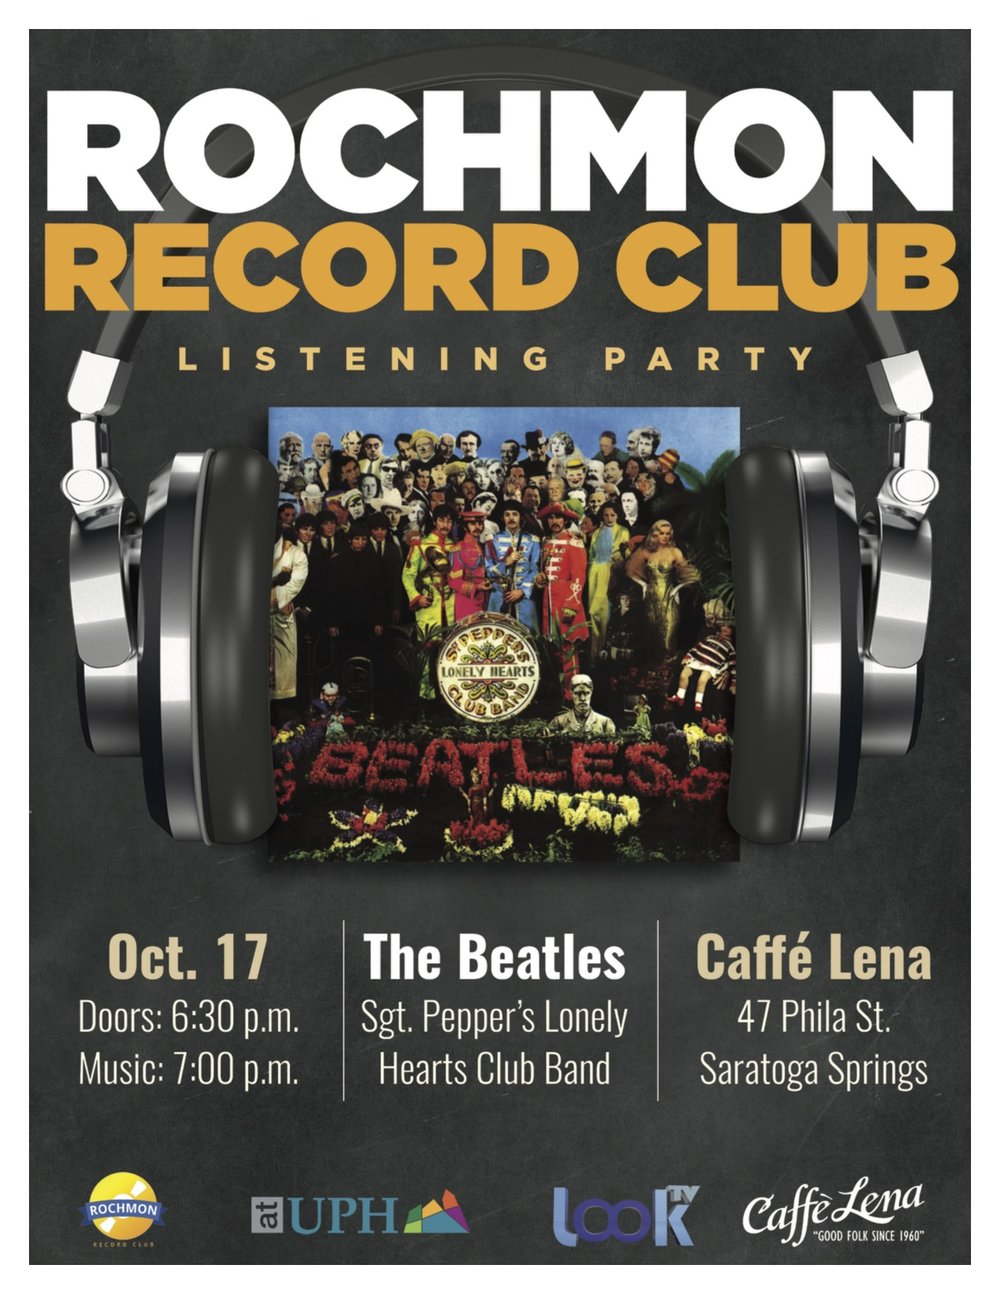 RochmonRecordClub_8.5x11_Oct2017.jpg